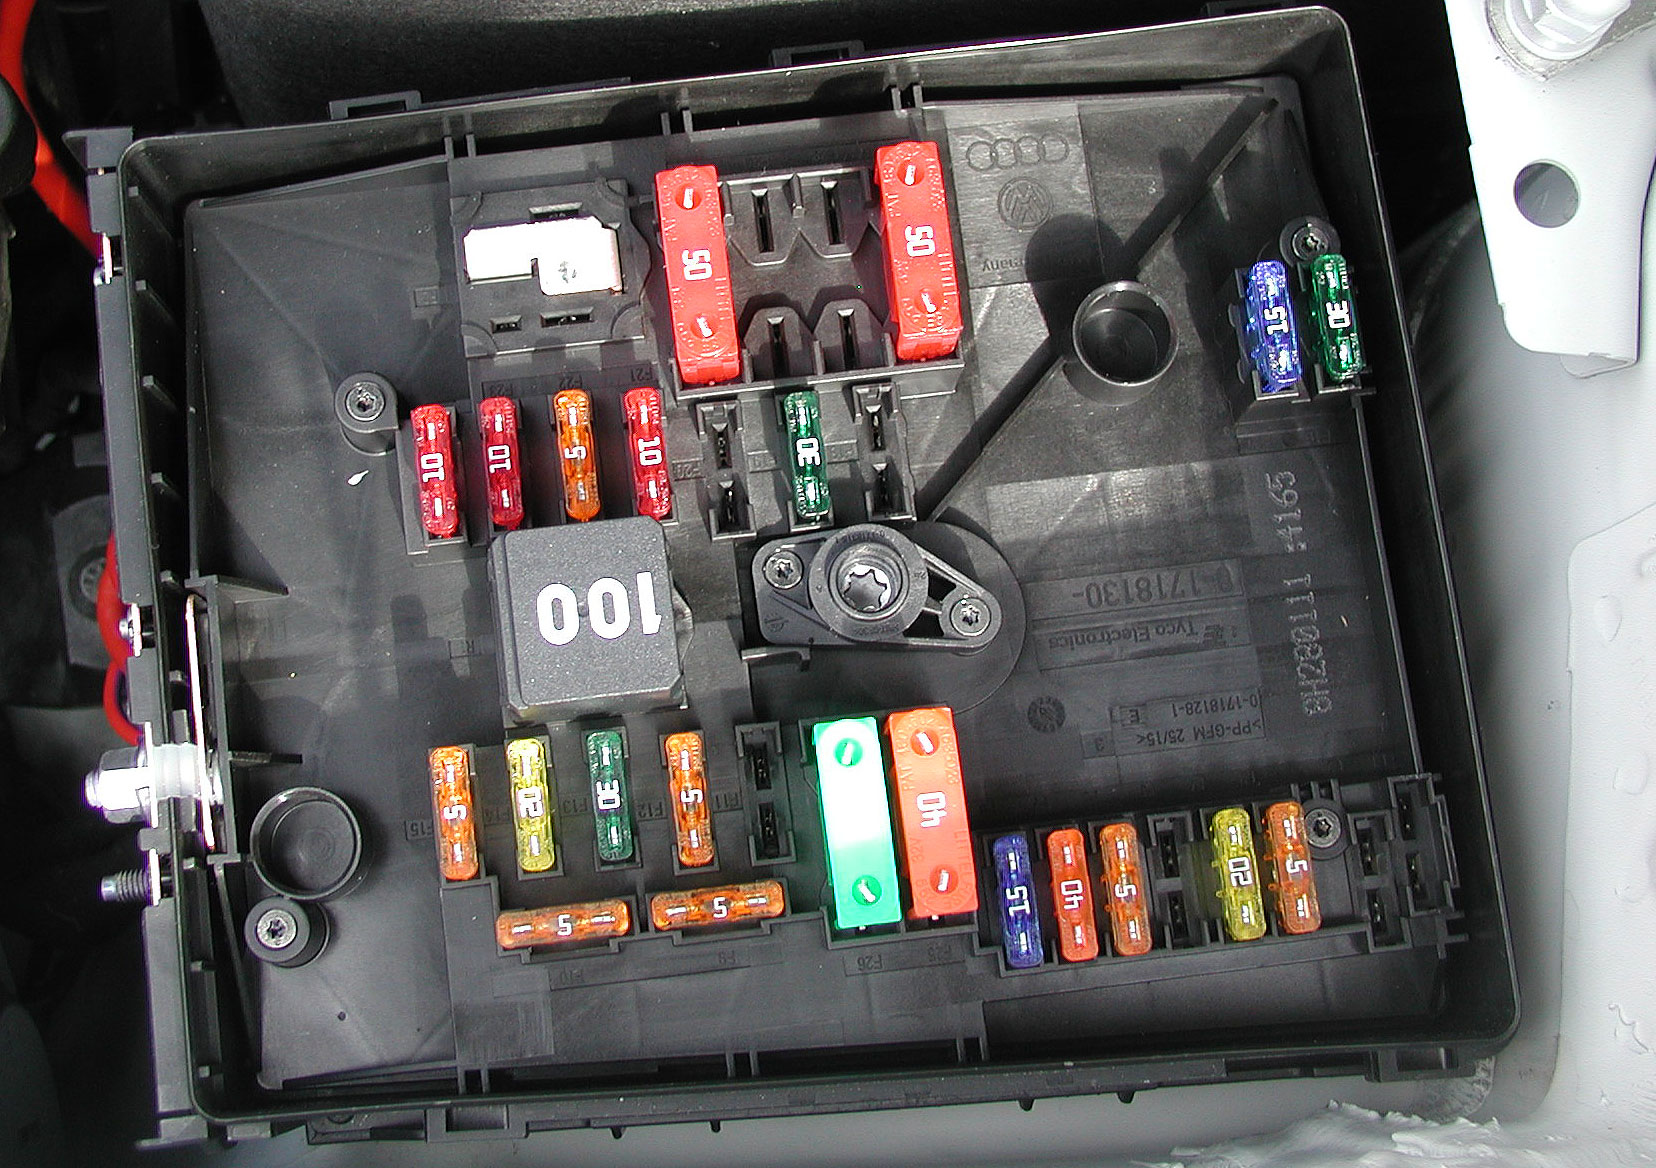 2011 Golf TDI Fuse Box (Picture Please!!!) - TDIClub Forums